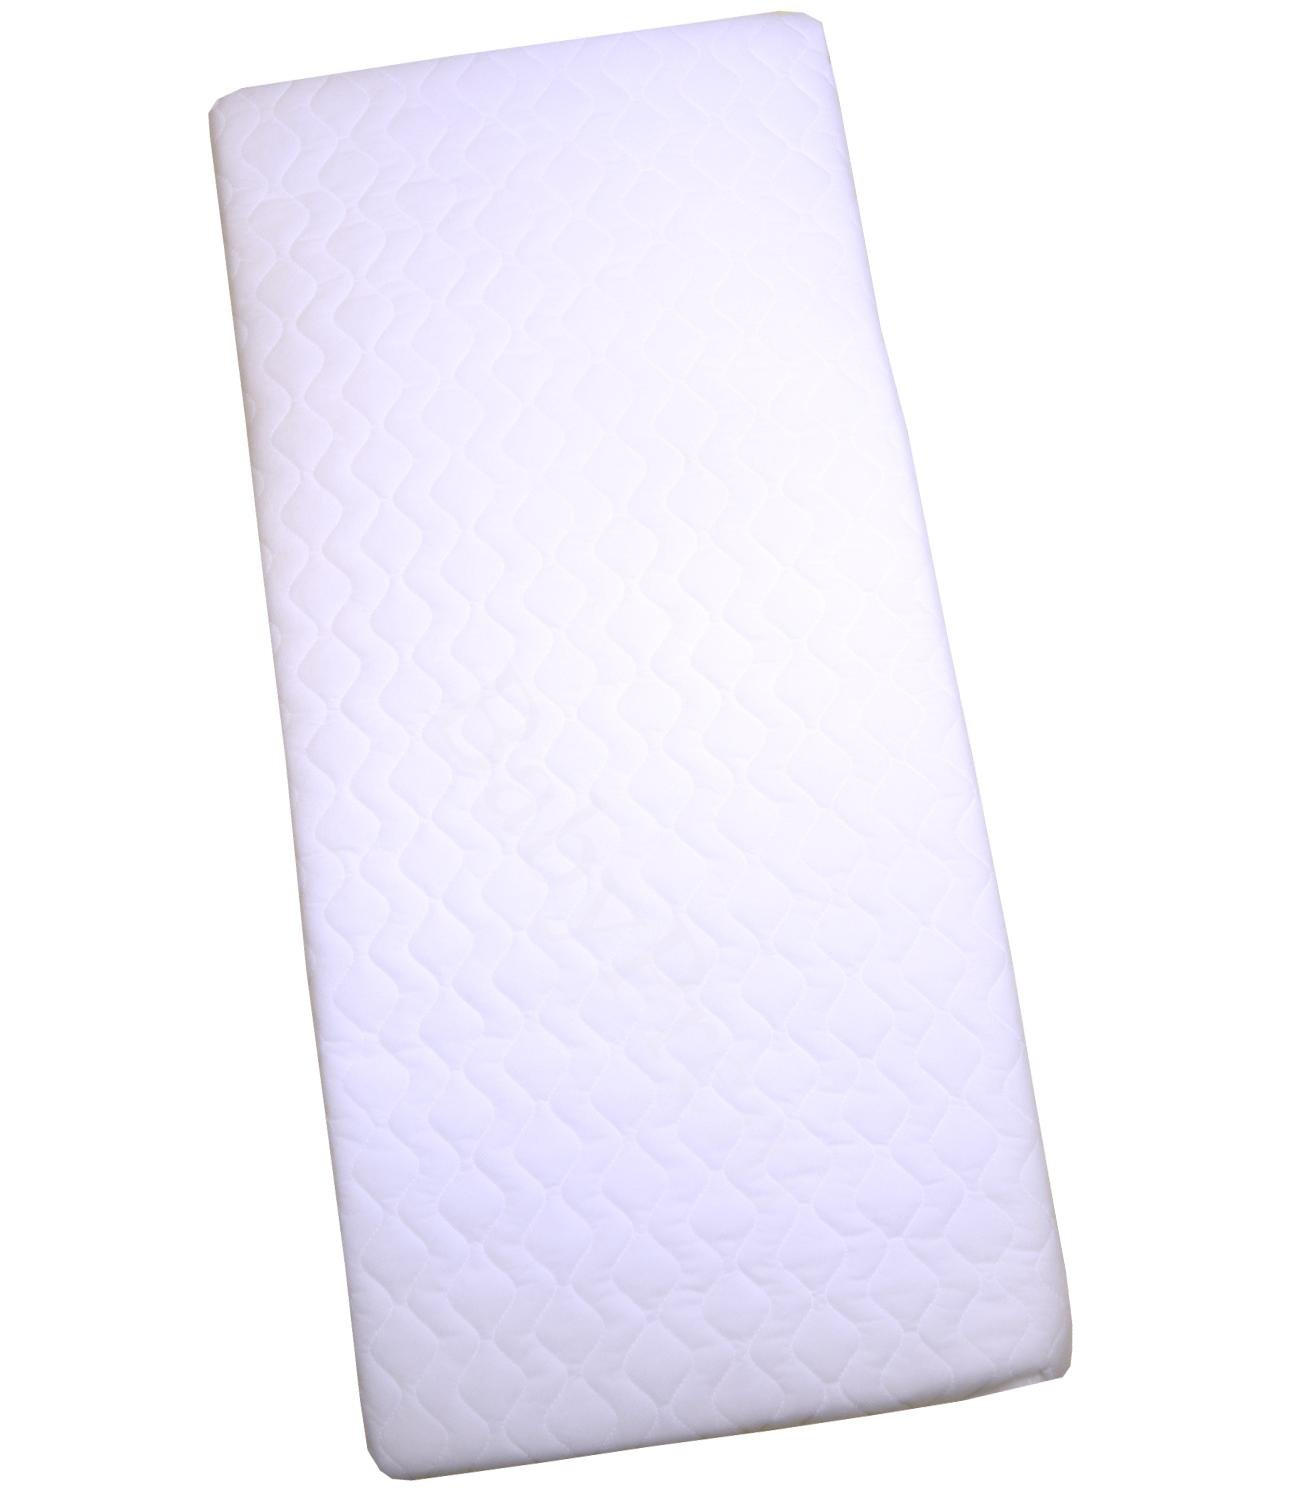 Cradle Mattress 35 x 16 x 1.5 Standard or Quilted Option Standard